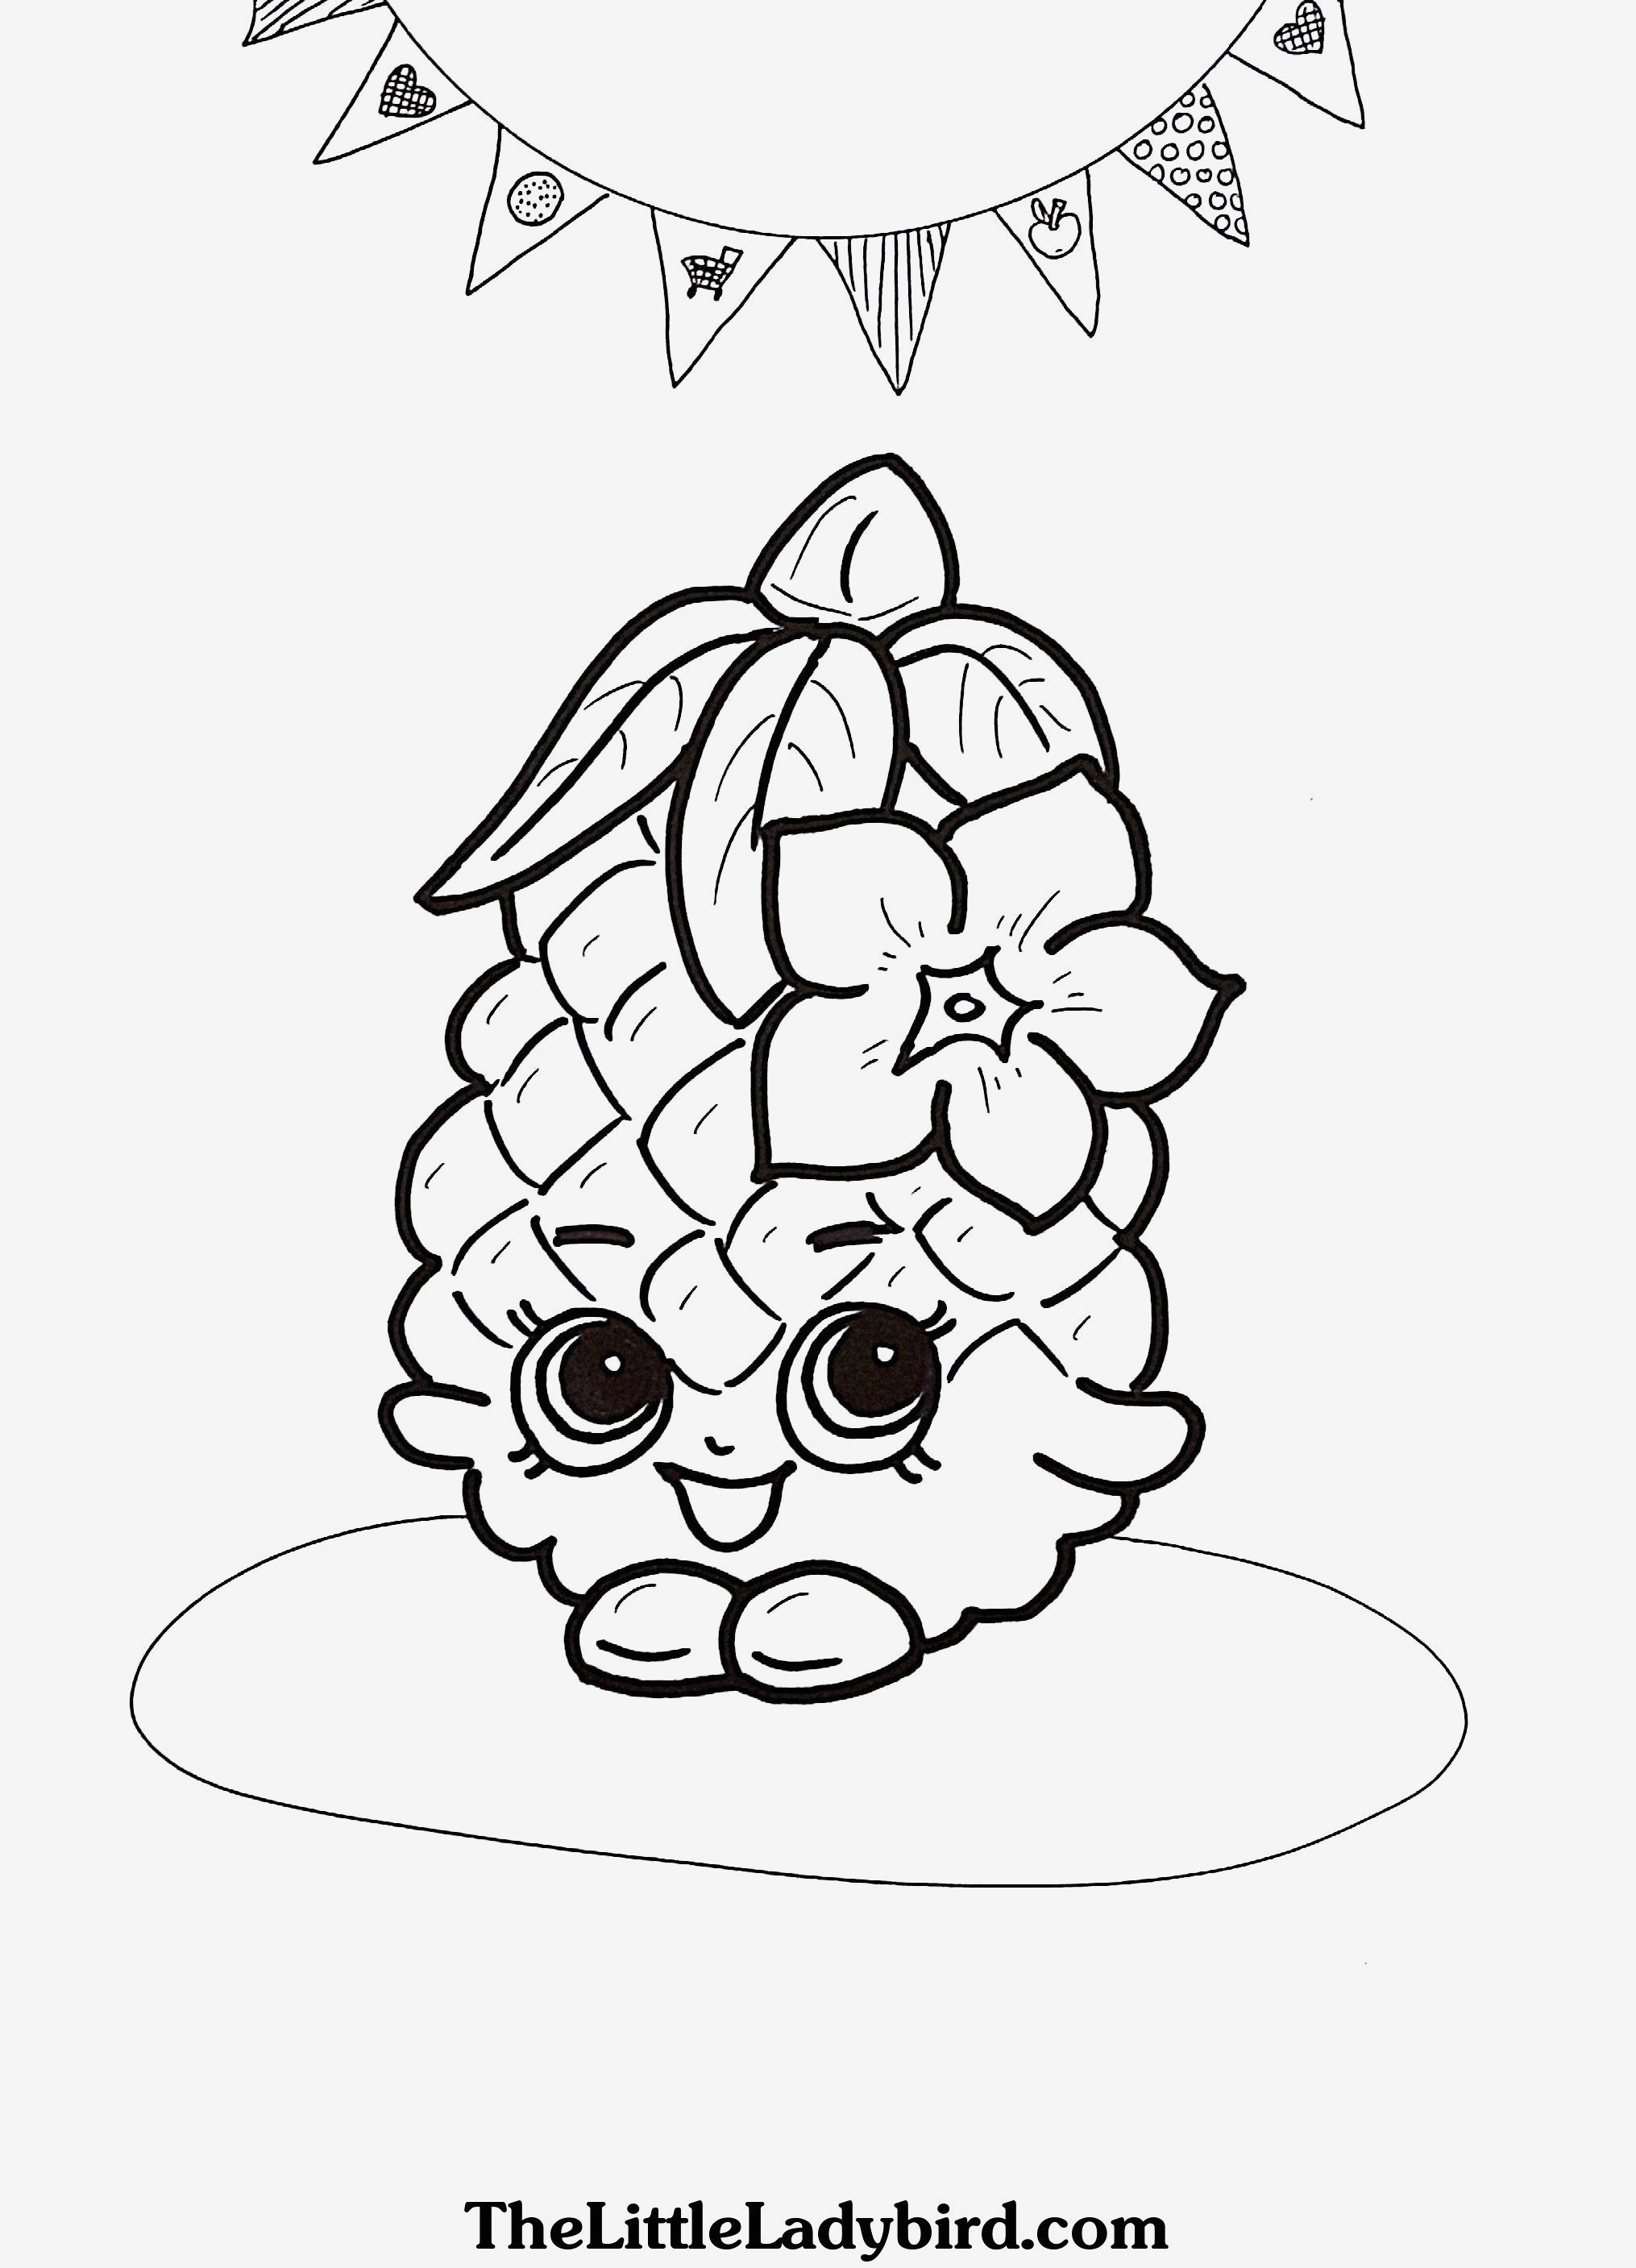 Book Of Life Coloring Pages  Gallery 19g - To print for your project